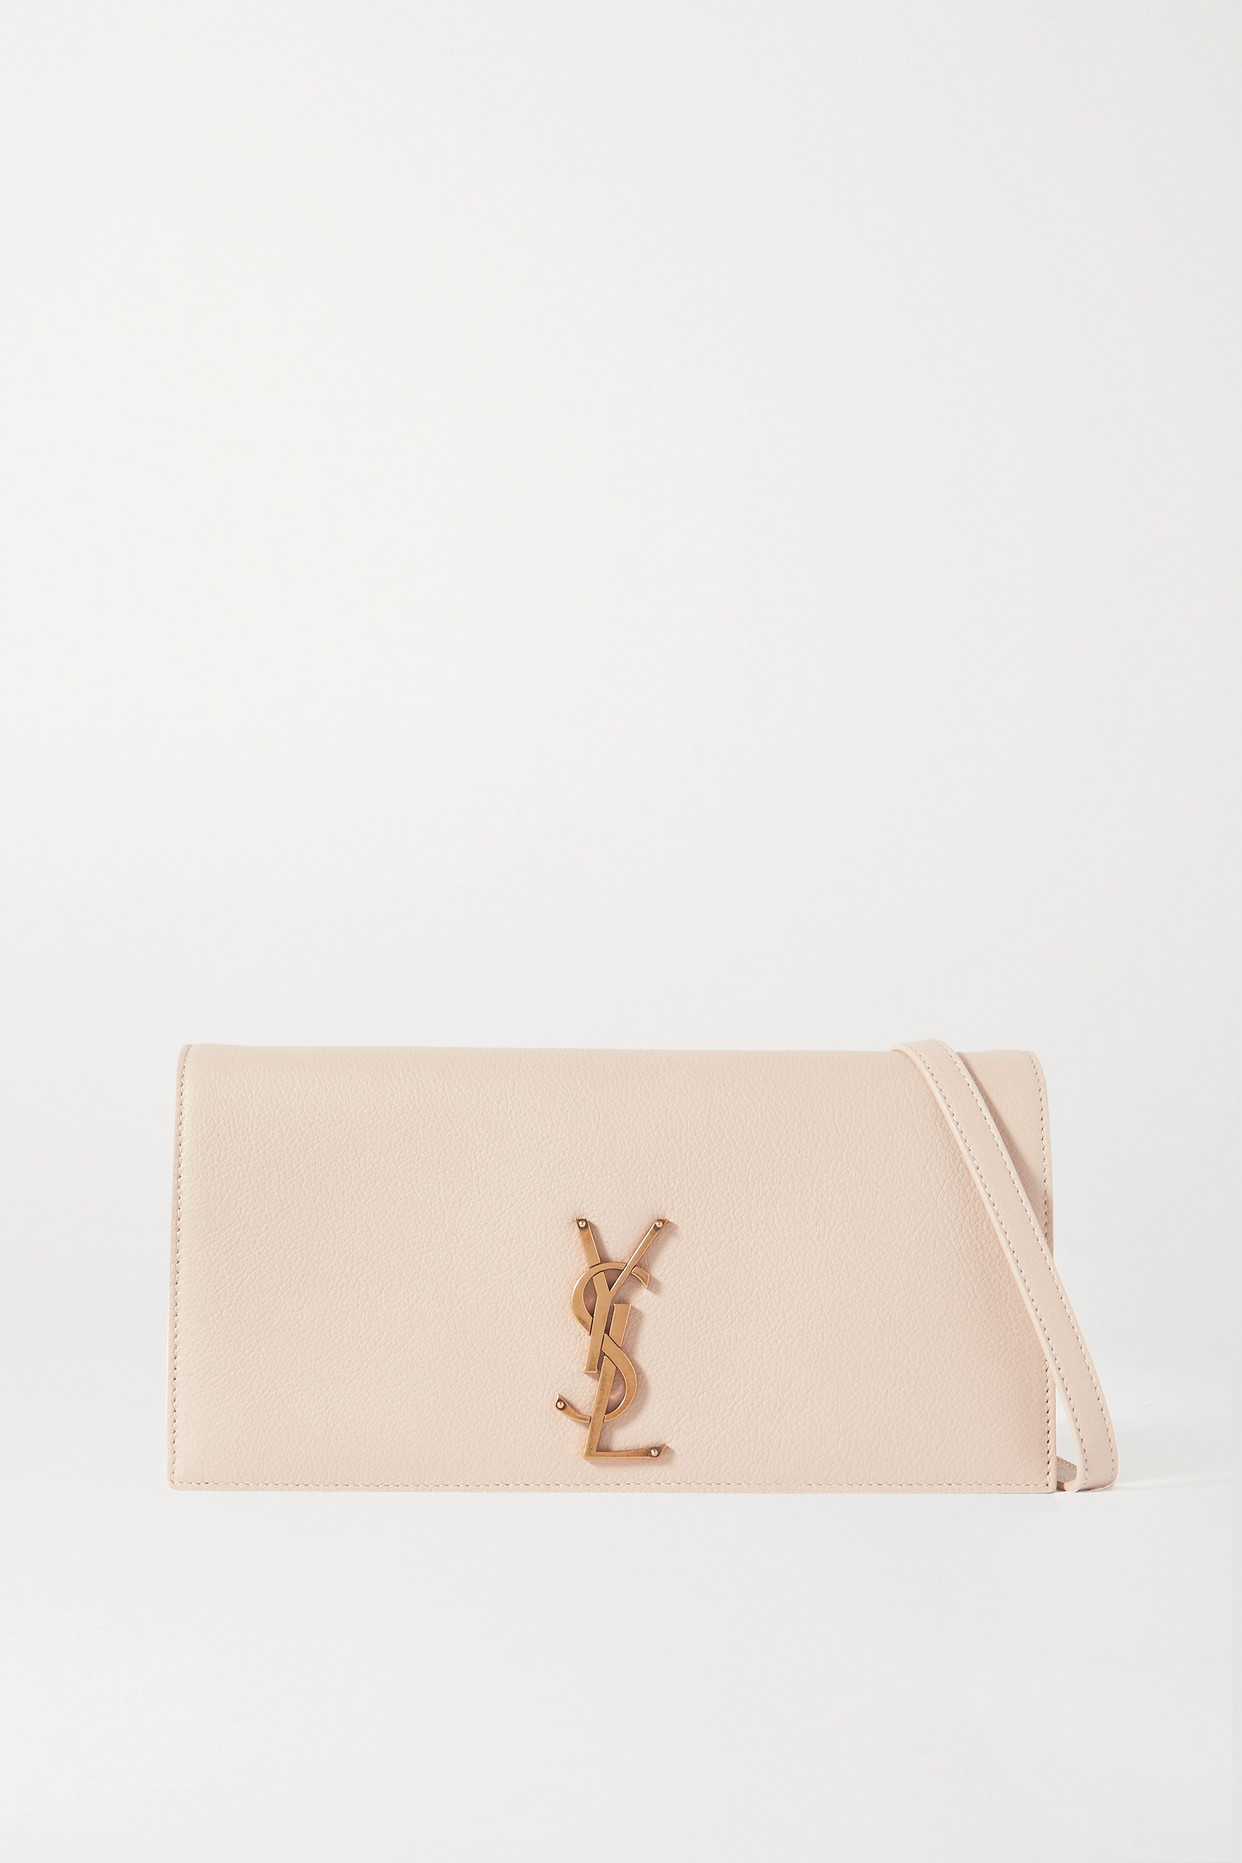 SAINT LAURENT - Kate 99 Leather Shoulder Bag - Neutrals - one size